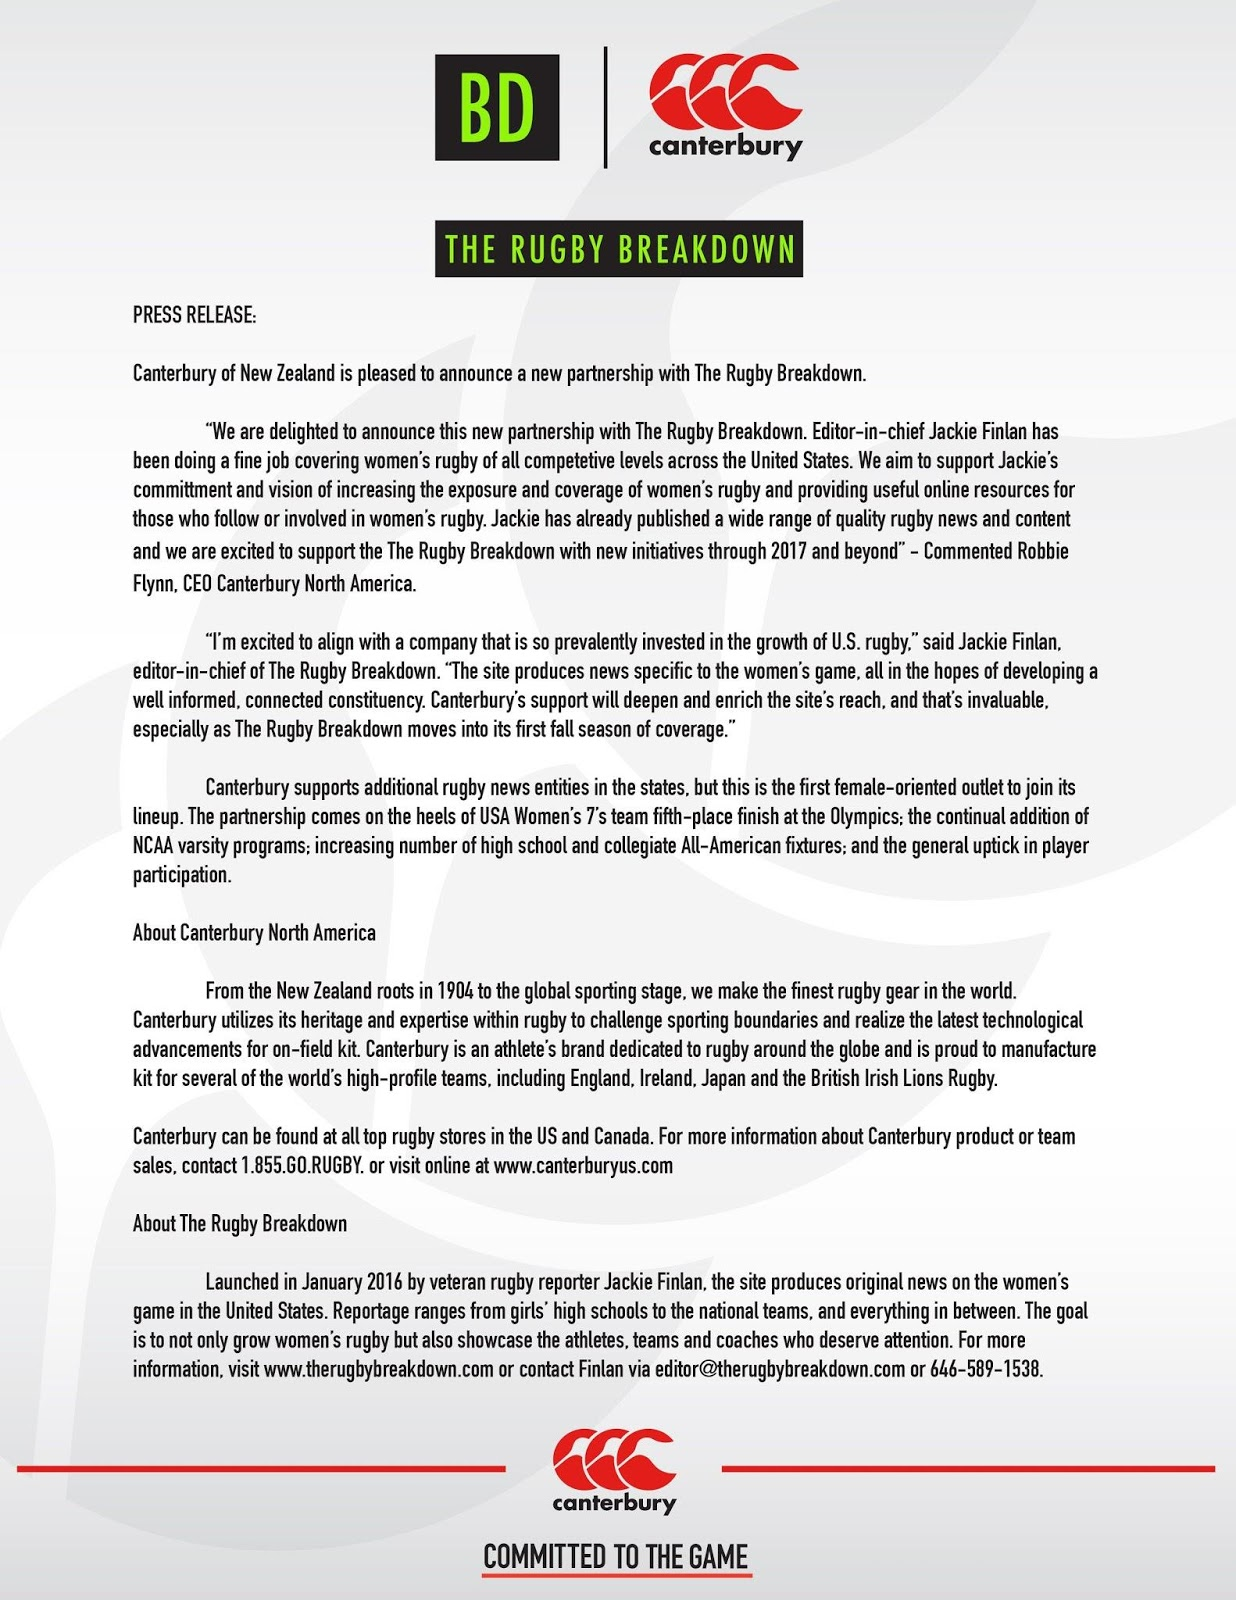 Partnership Press Release for Canterbury and The Rugby Breakdown